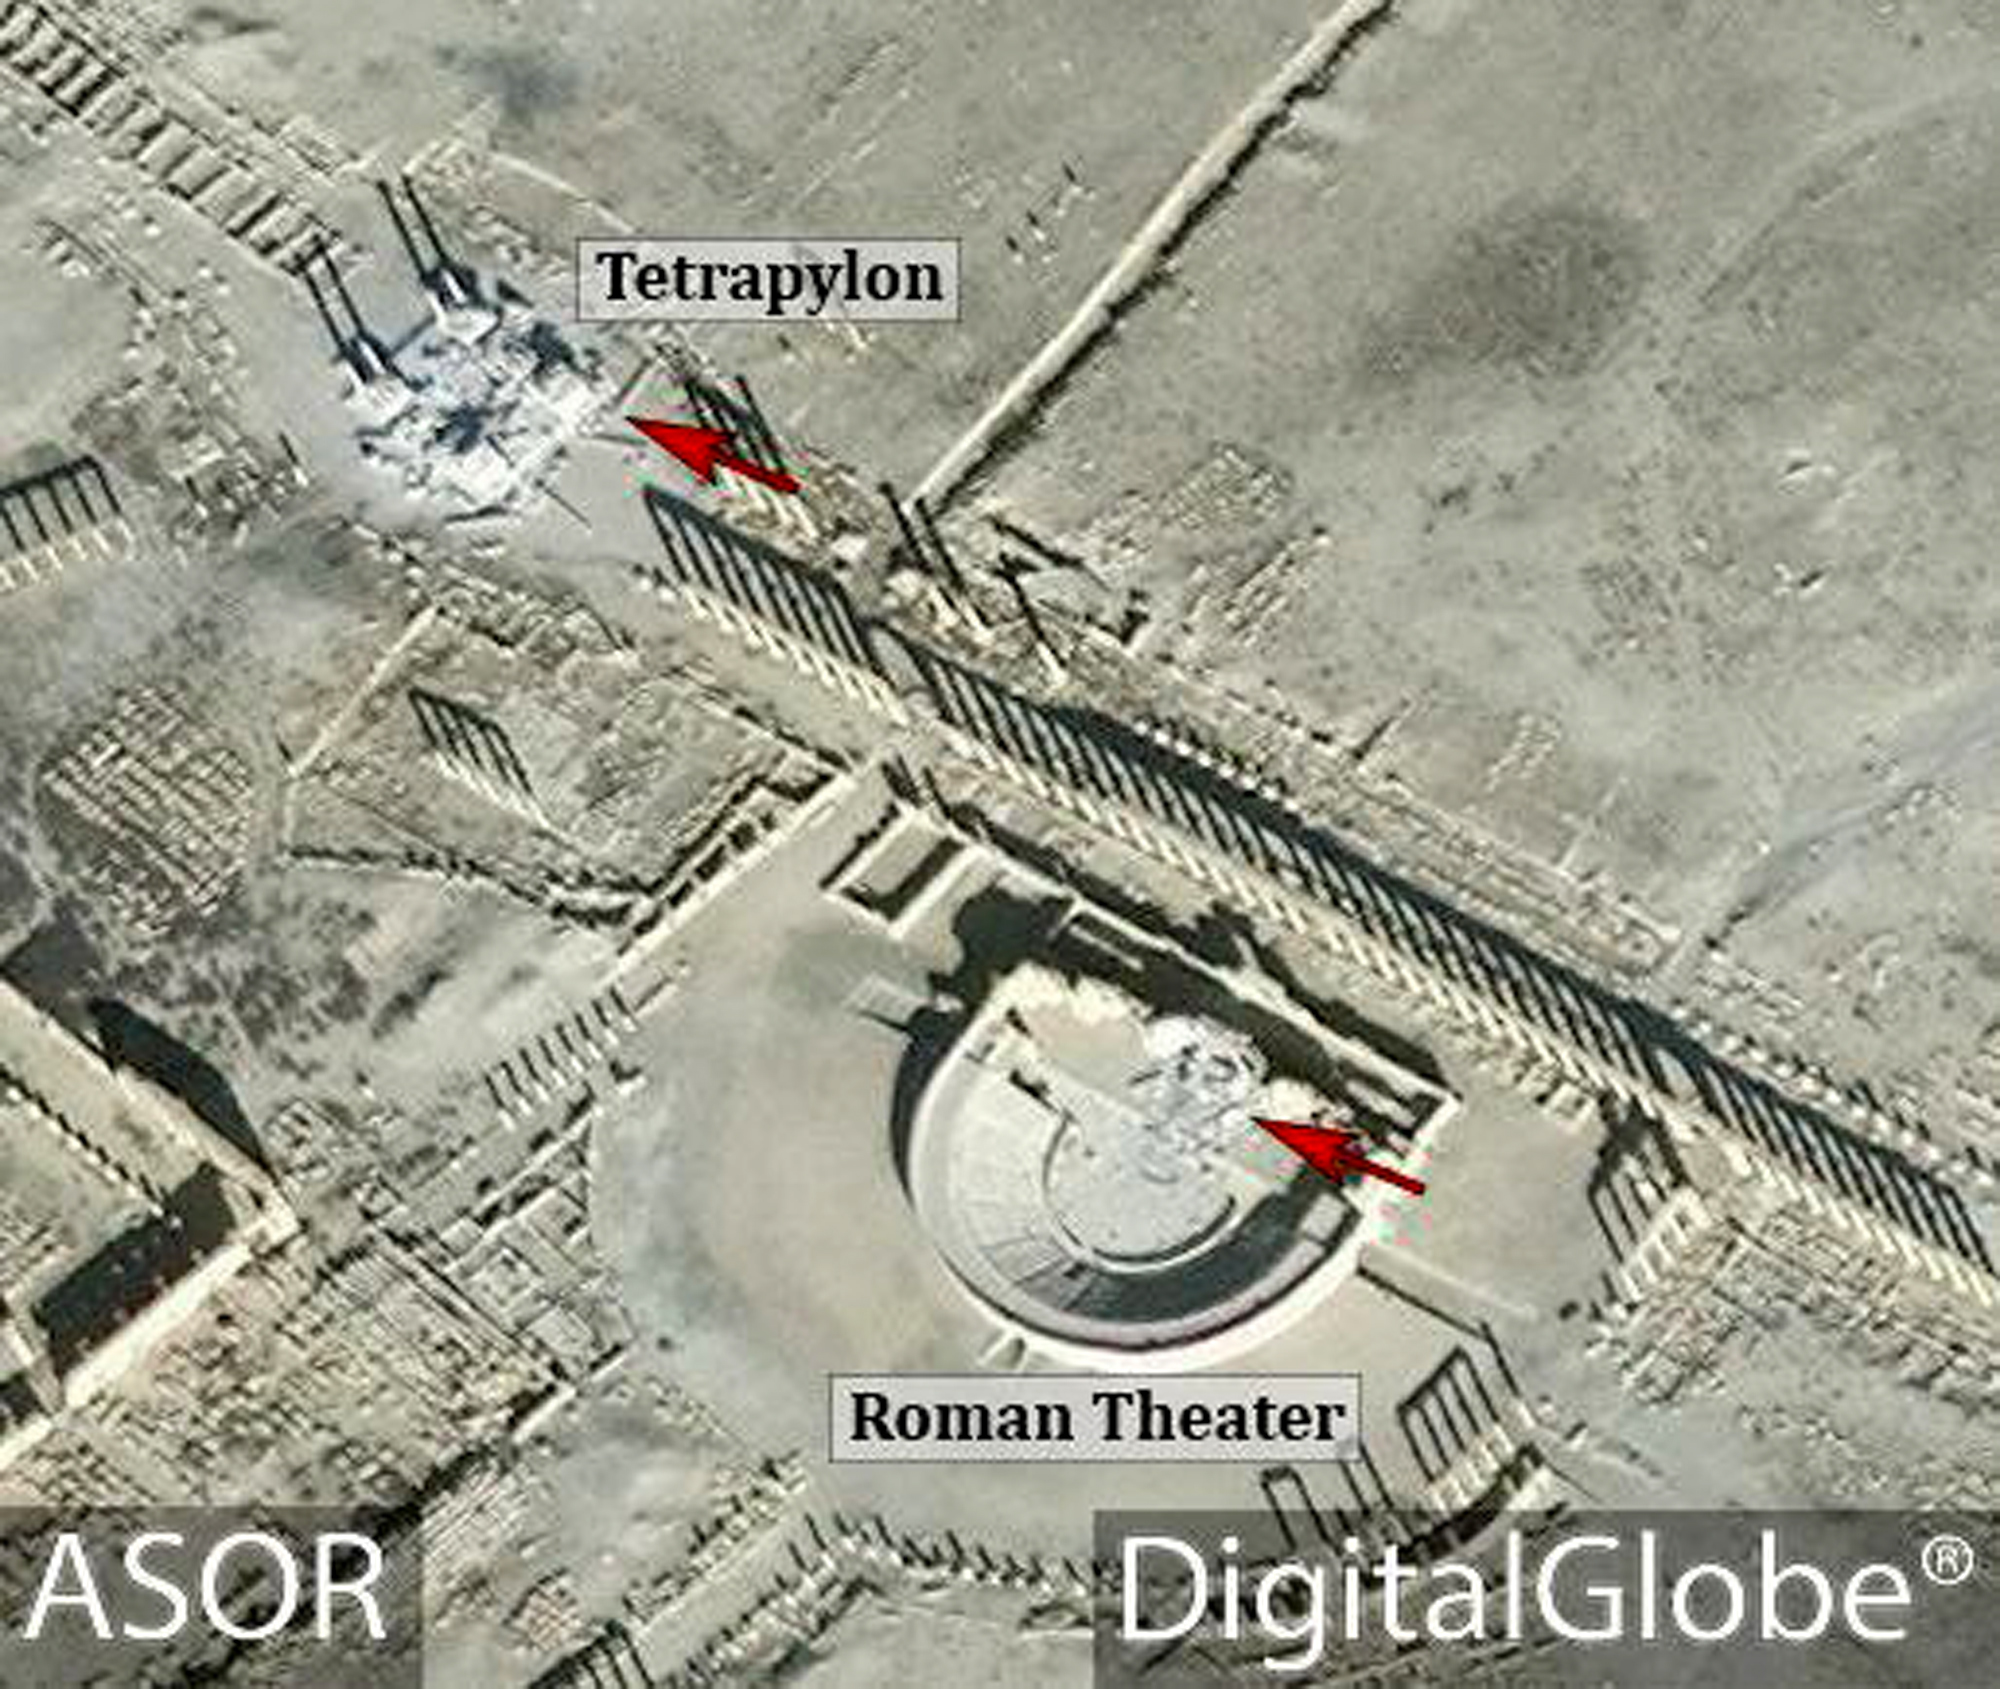 This satellite image released by the American Schools of Oriental Research (ASOR) on Friday, Jan. 20, 2017 as captured by DigitalGlobe shows the Roman theater at the UNESCO World Heritage Site of Palmyra, Syria with red denoting area of new damages on Jan. 10, 2017. (ASOR/ DigitalGlobe via AP)